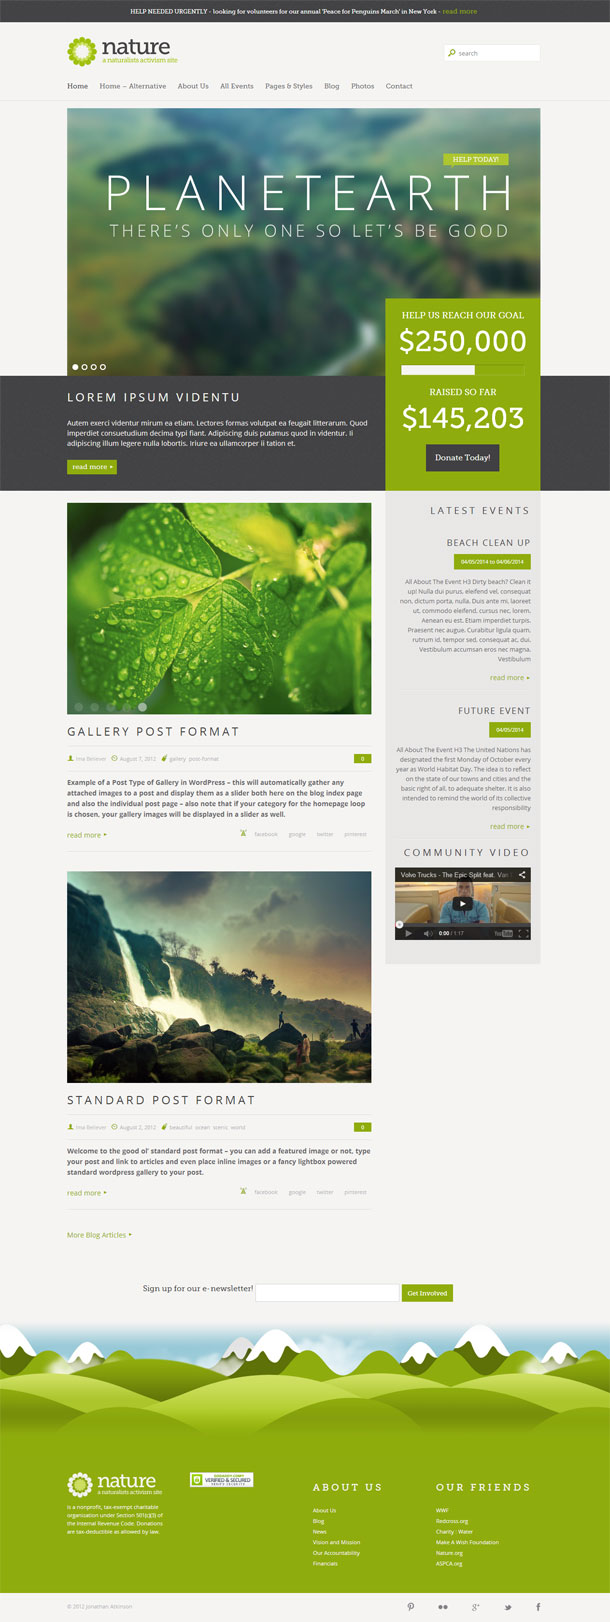 Nature Green Theme Image